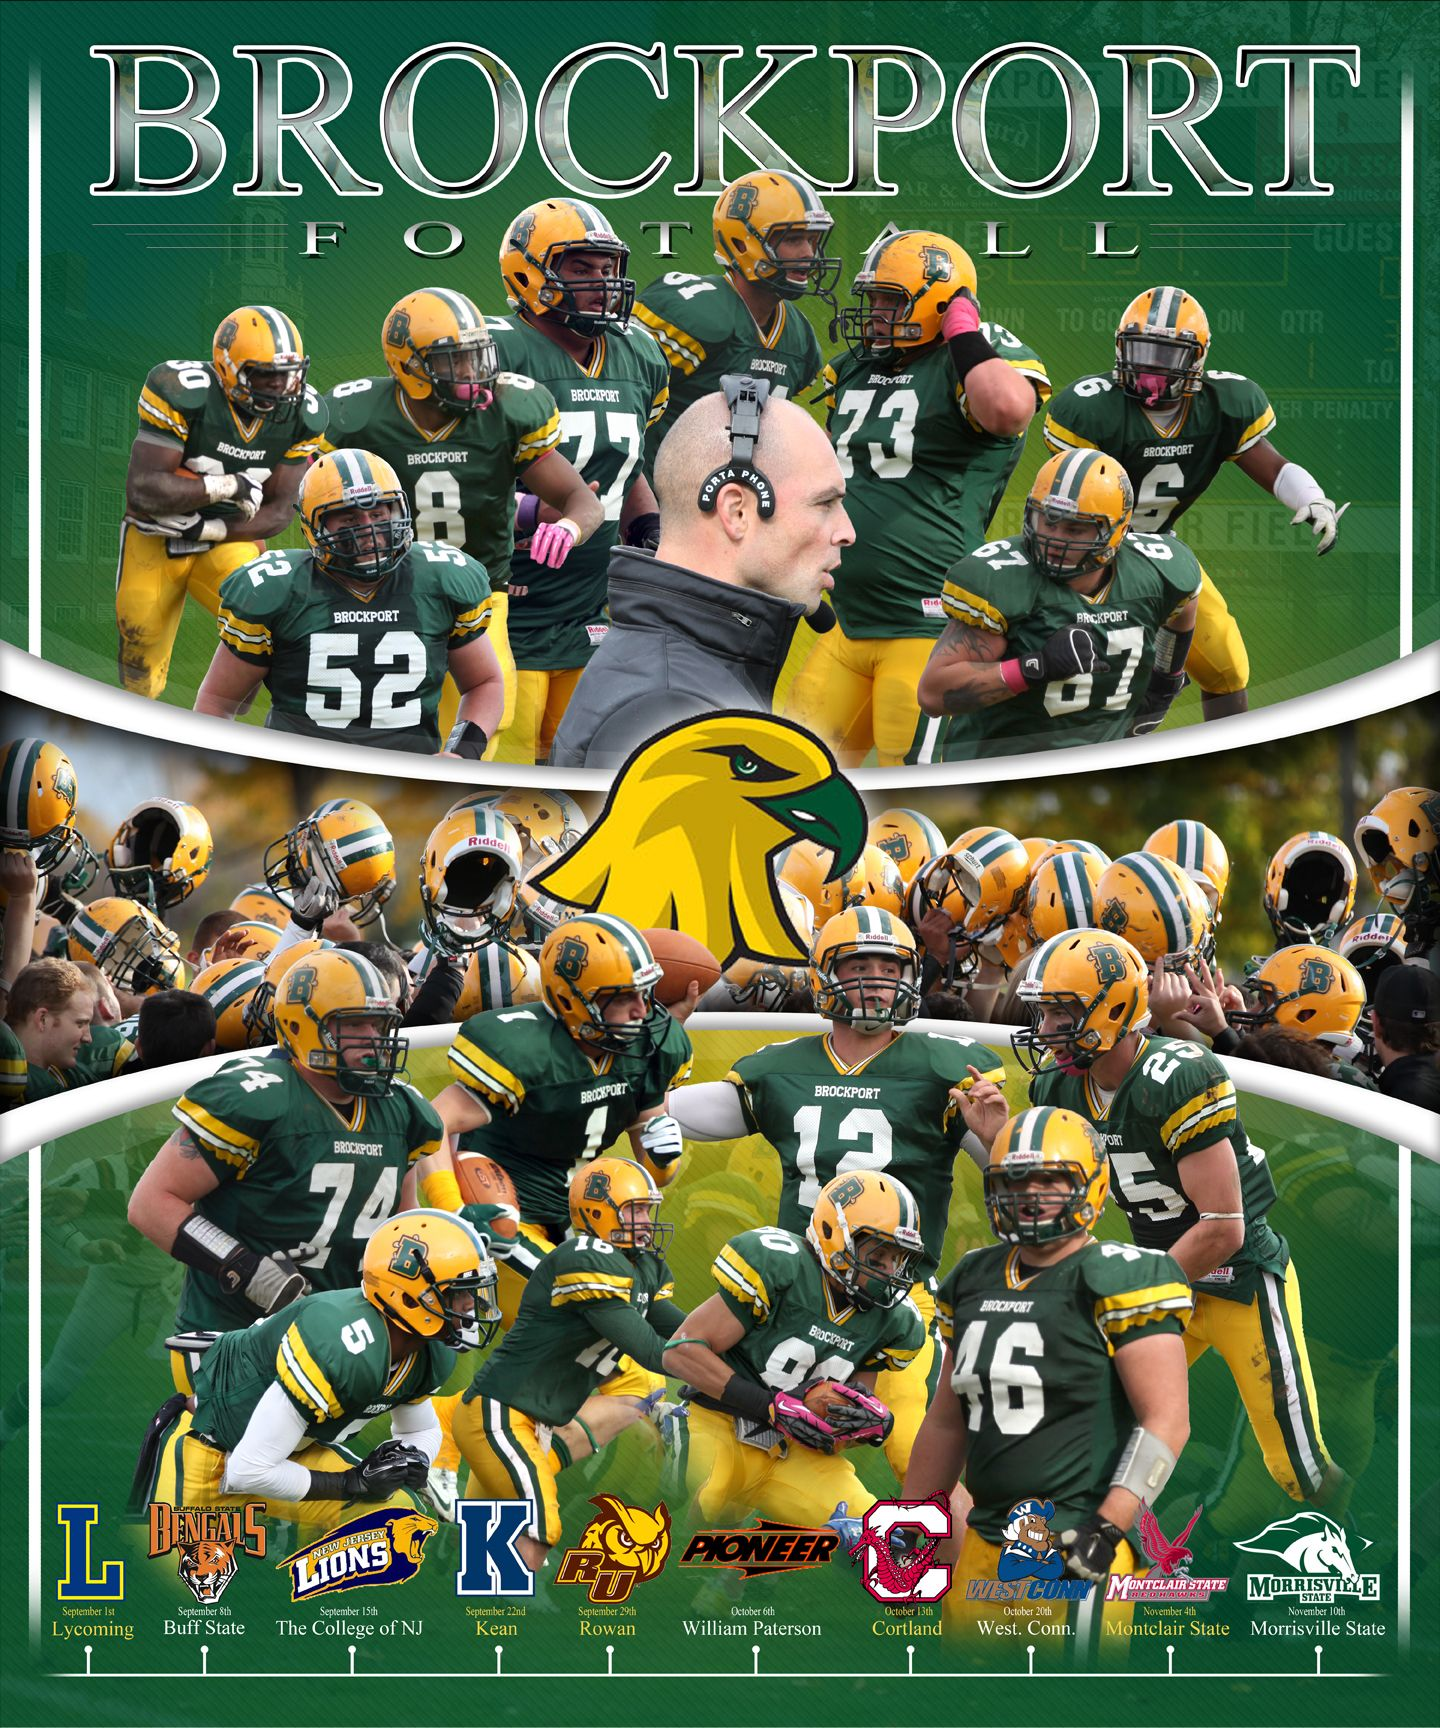 Brockport University Football